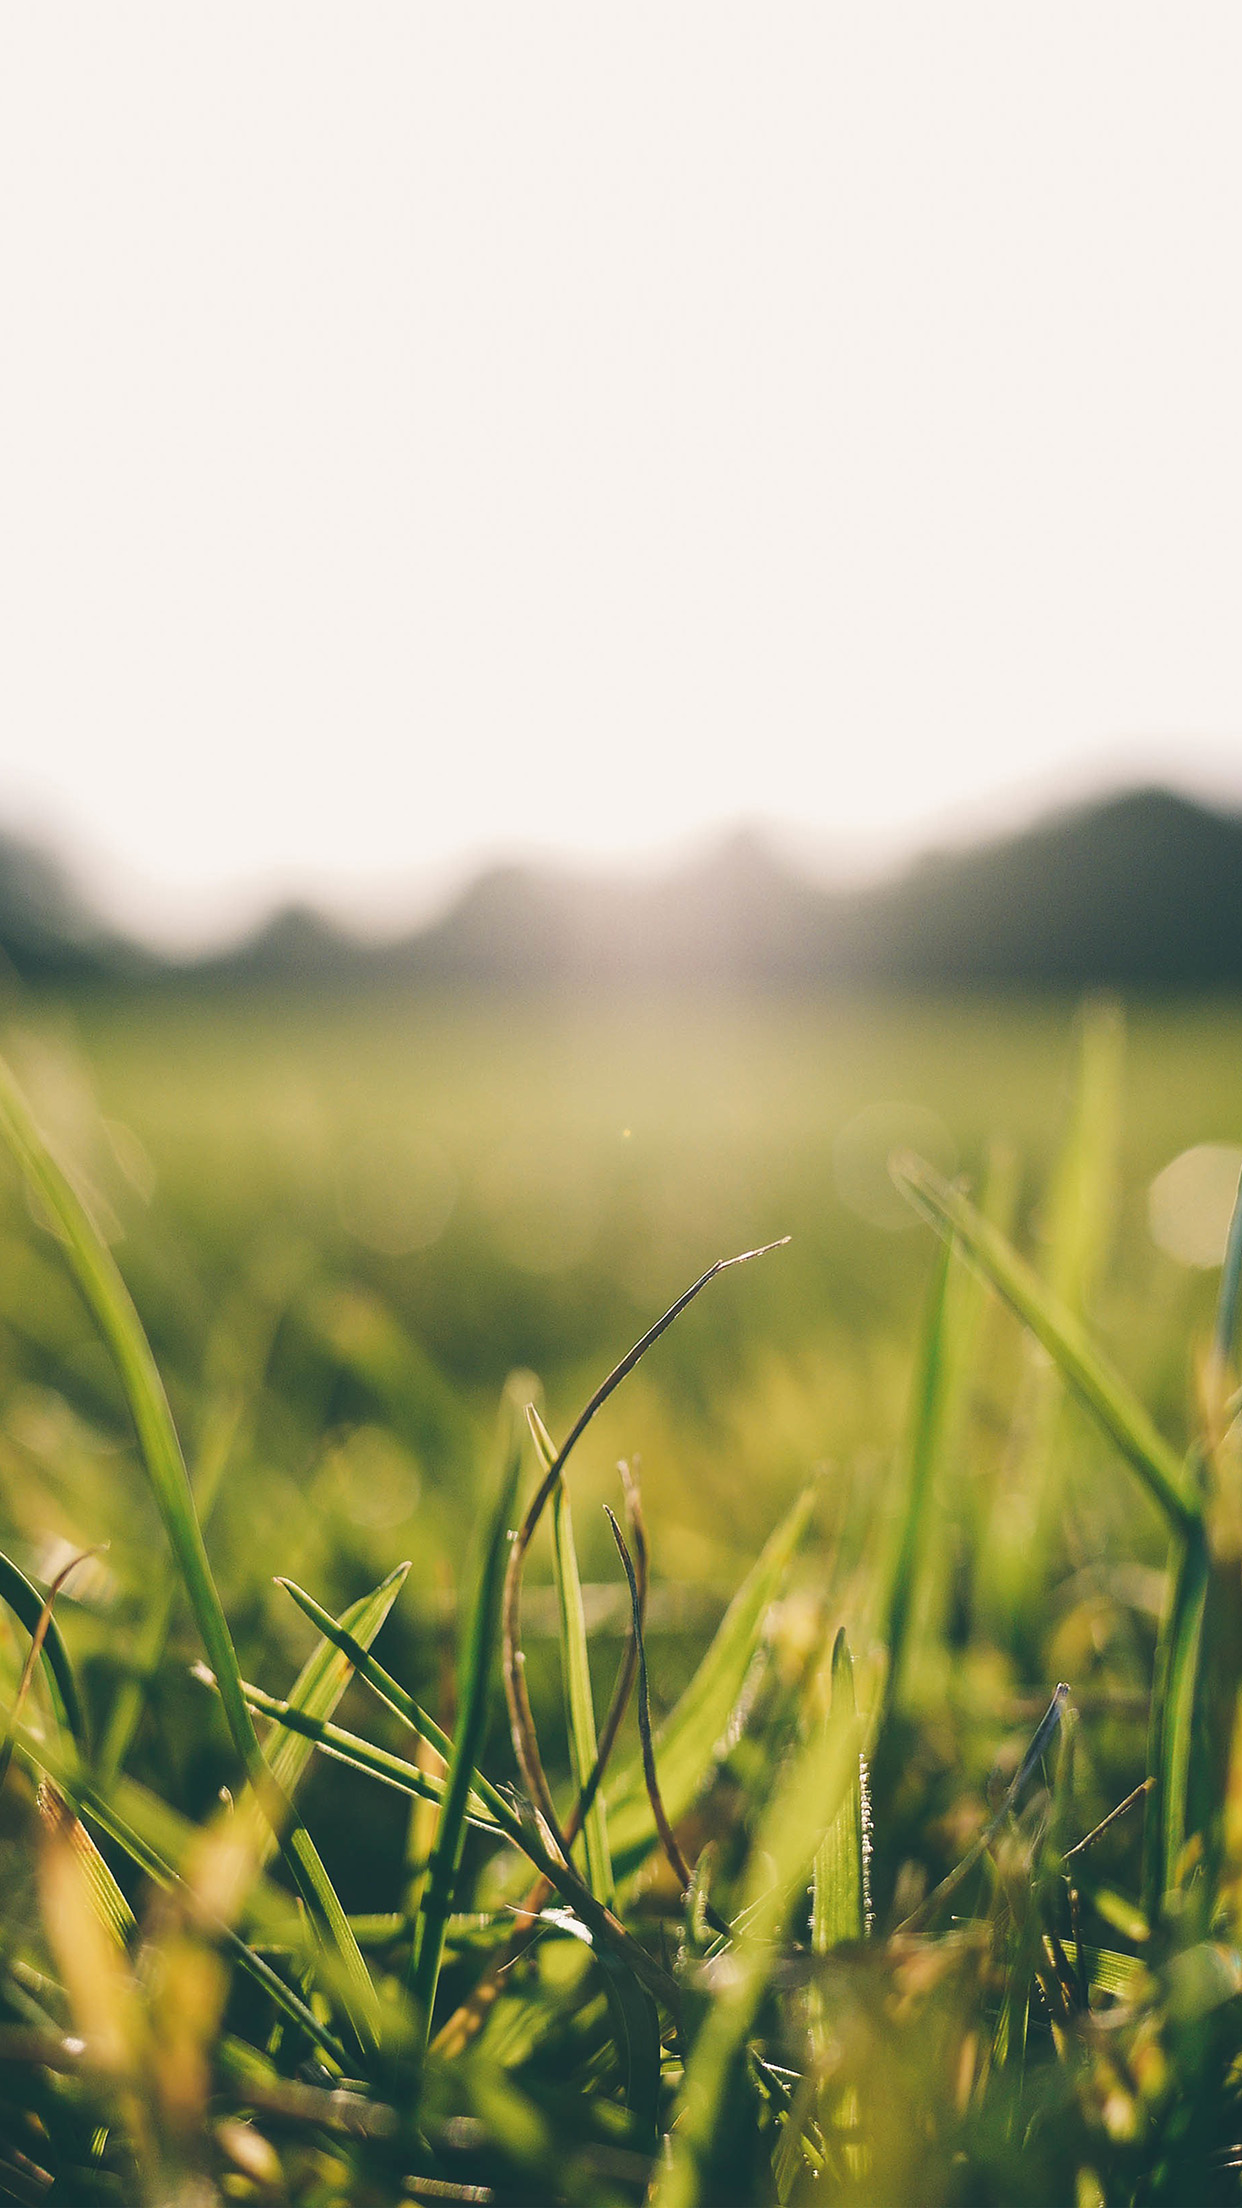 Grass Green Bokeh Light Summer Nature Android wallpaper